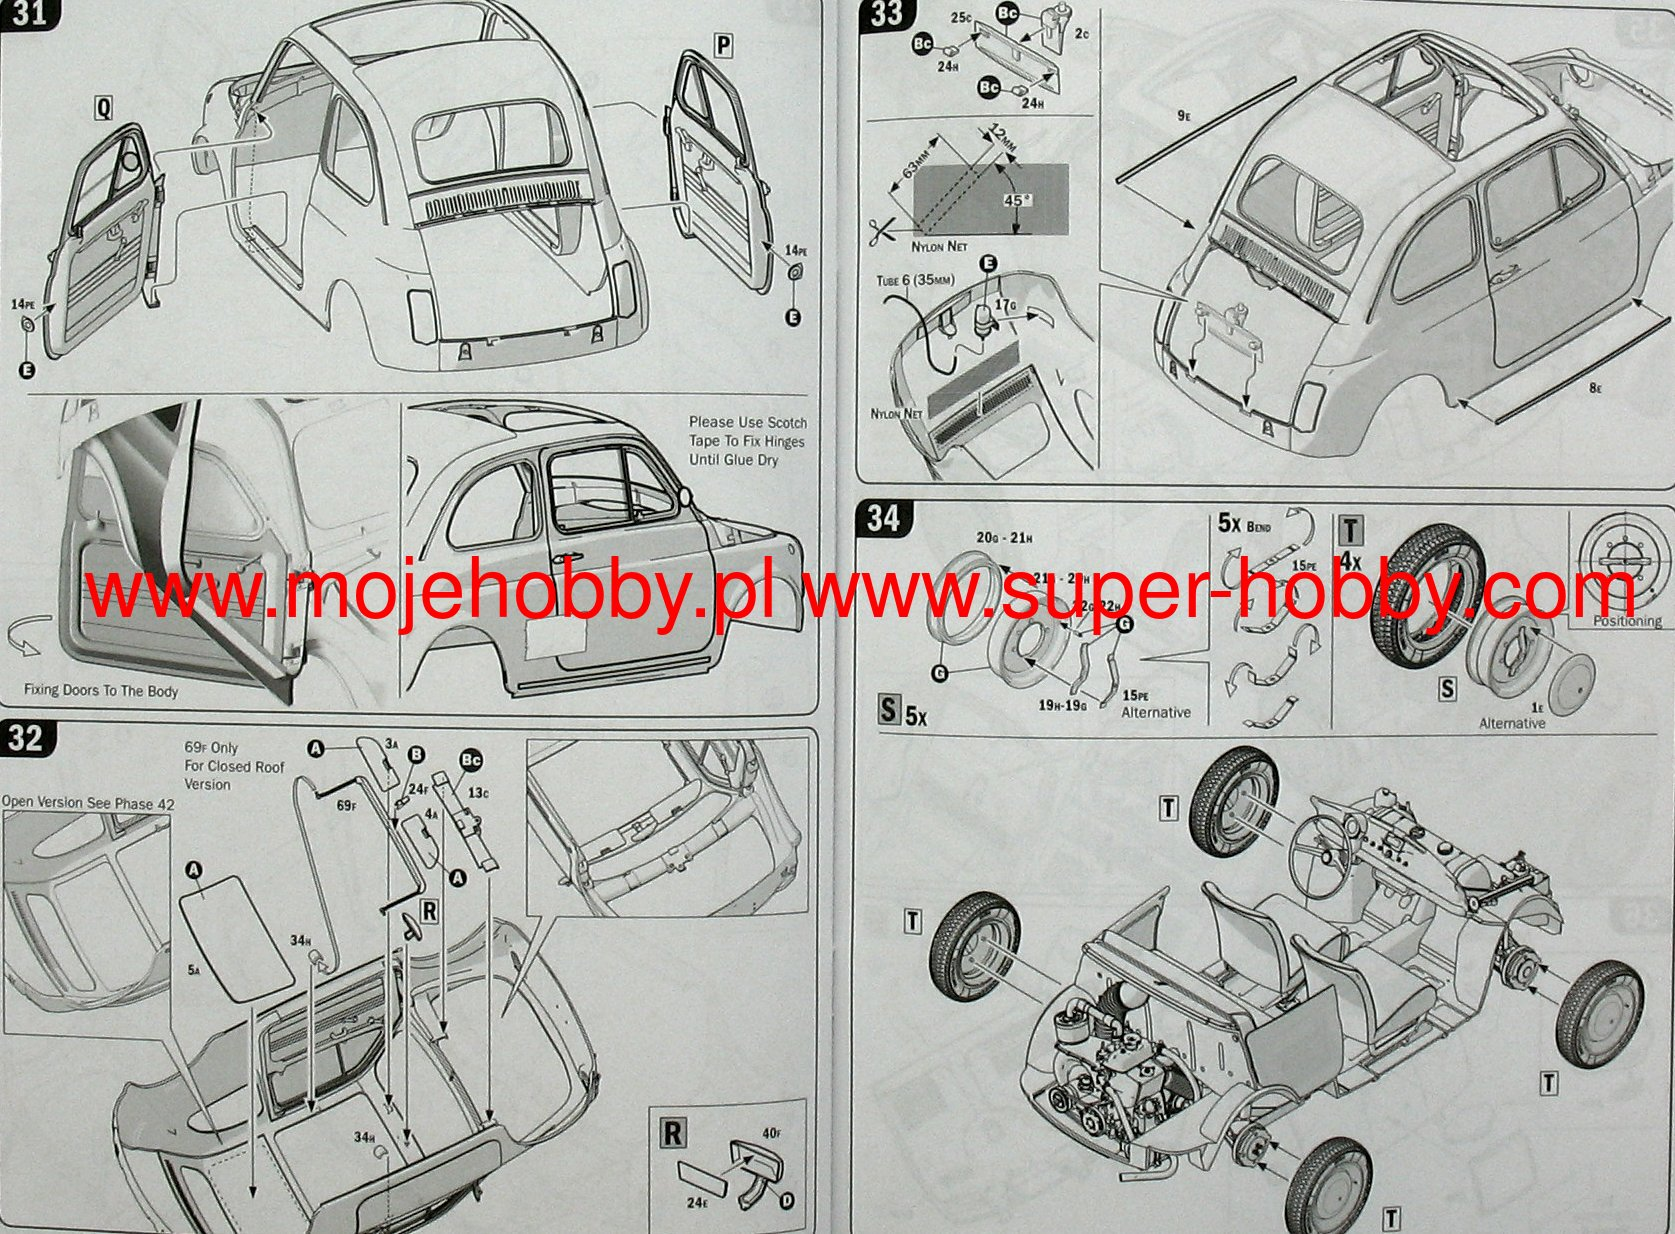 Fiat 500f Wiring Diagram Start Building A 1977 124 1968r Italeri 4703 Rh Super Hobby Co Uk 500 F Spider Dashboard Controls